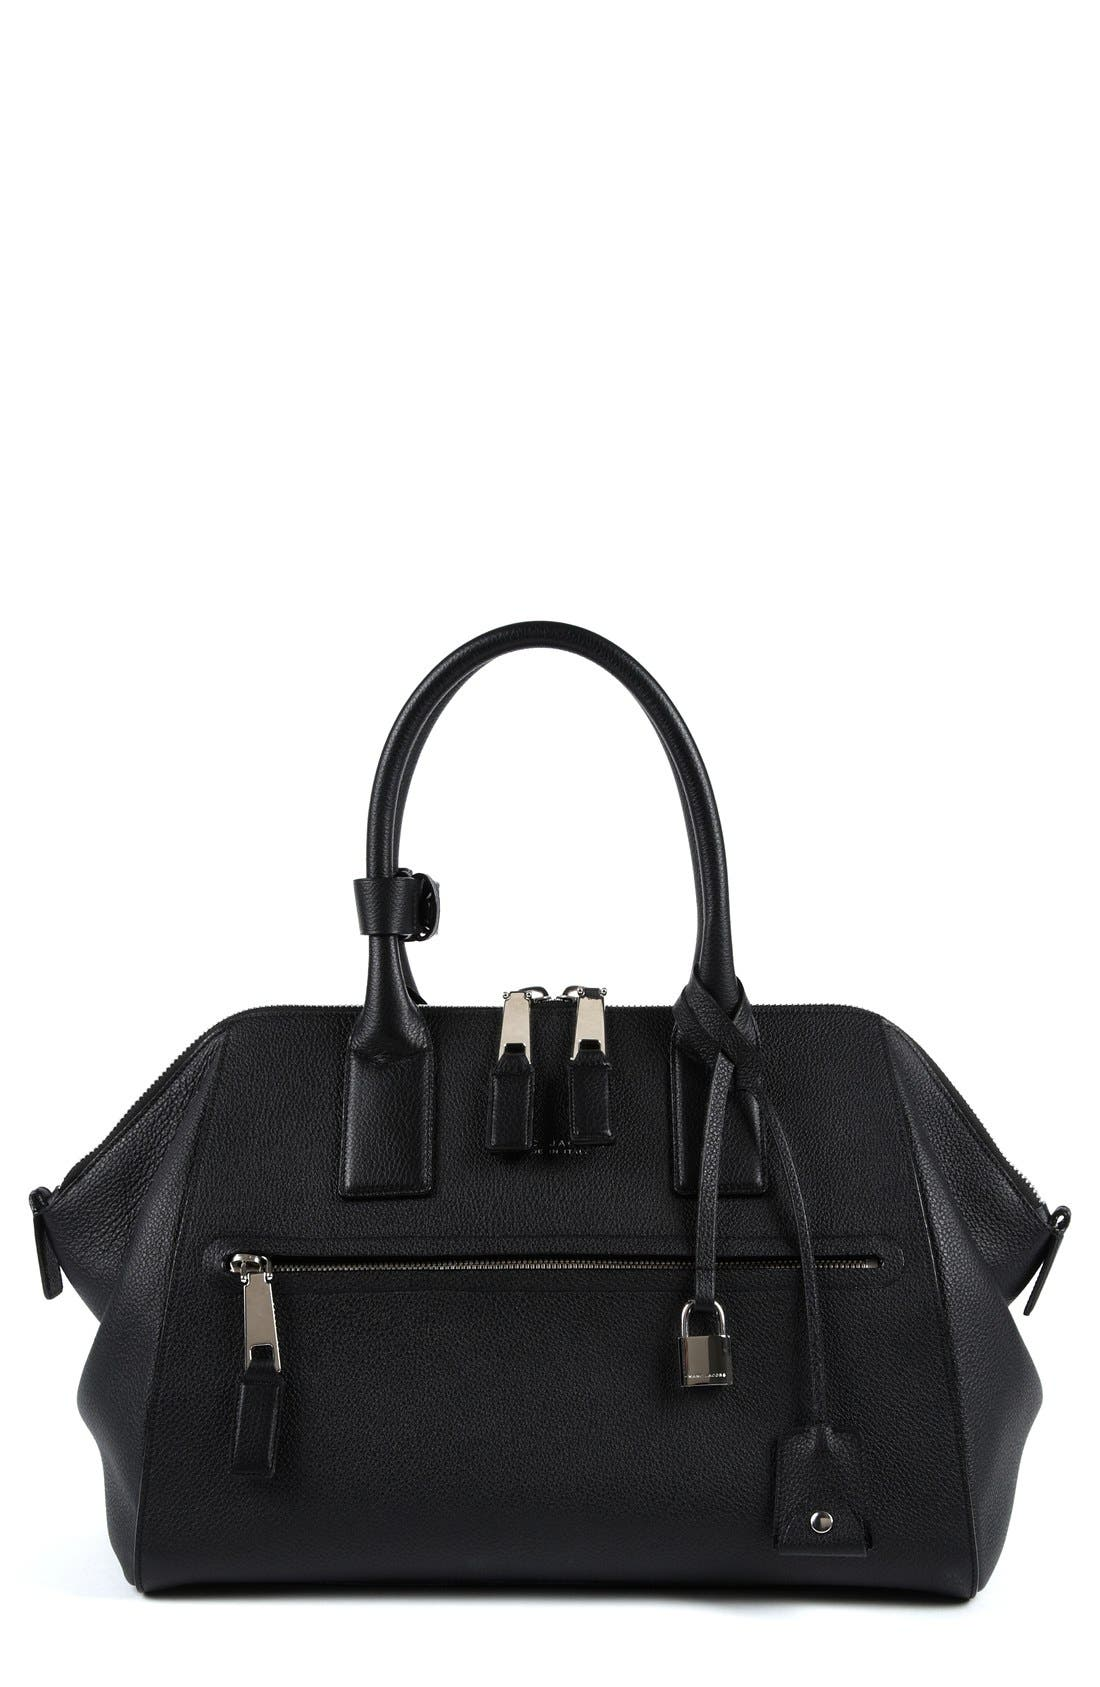 'Medium Incognito' Leather Satchel,                             Main thumbnail 1, color,                             001